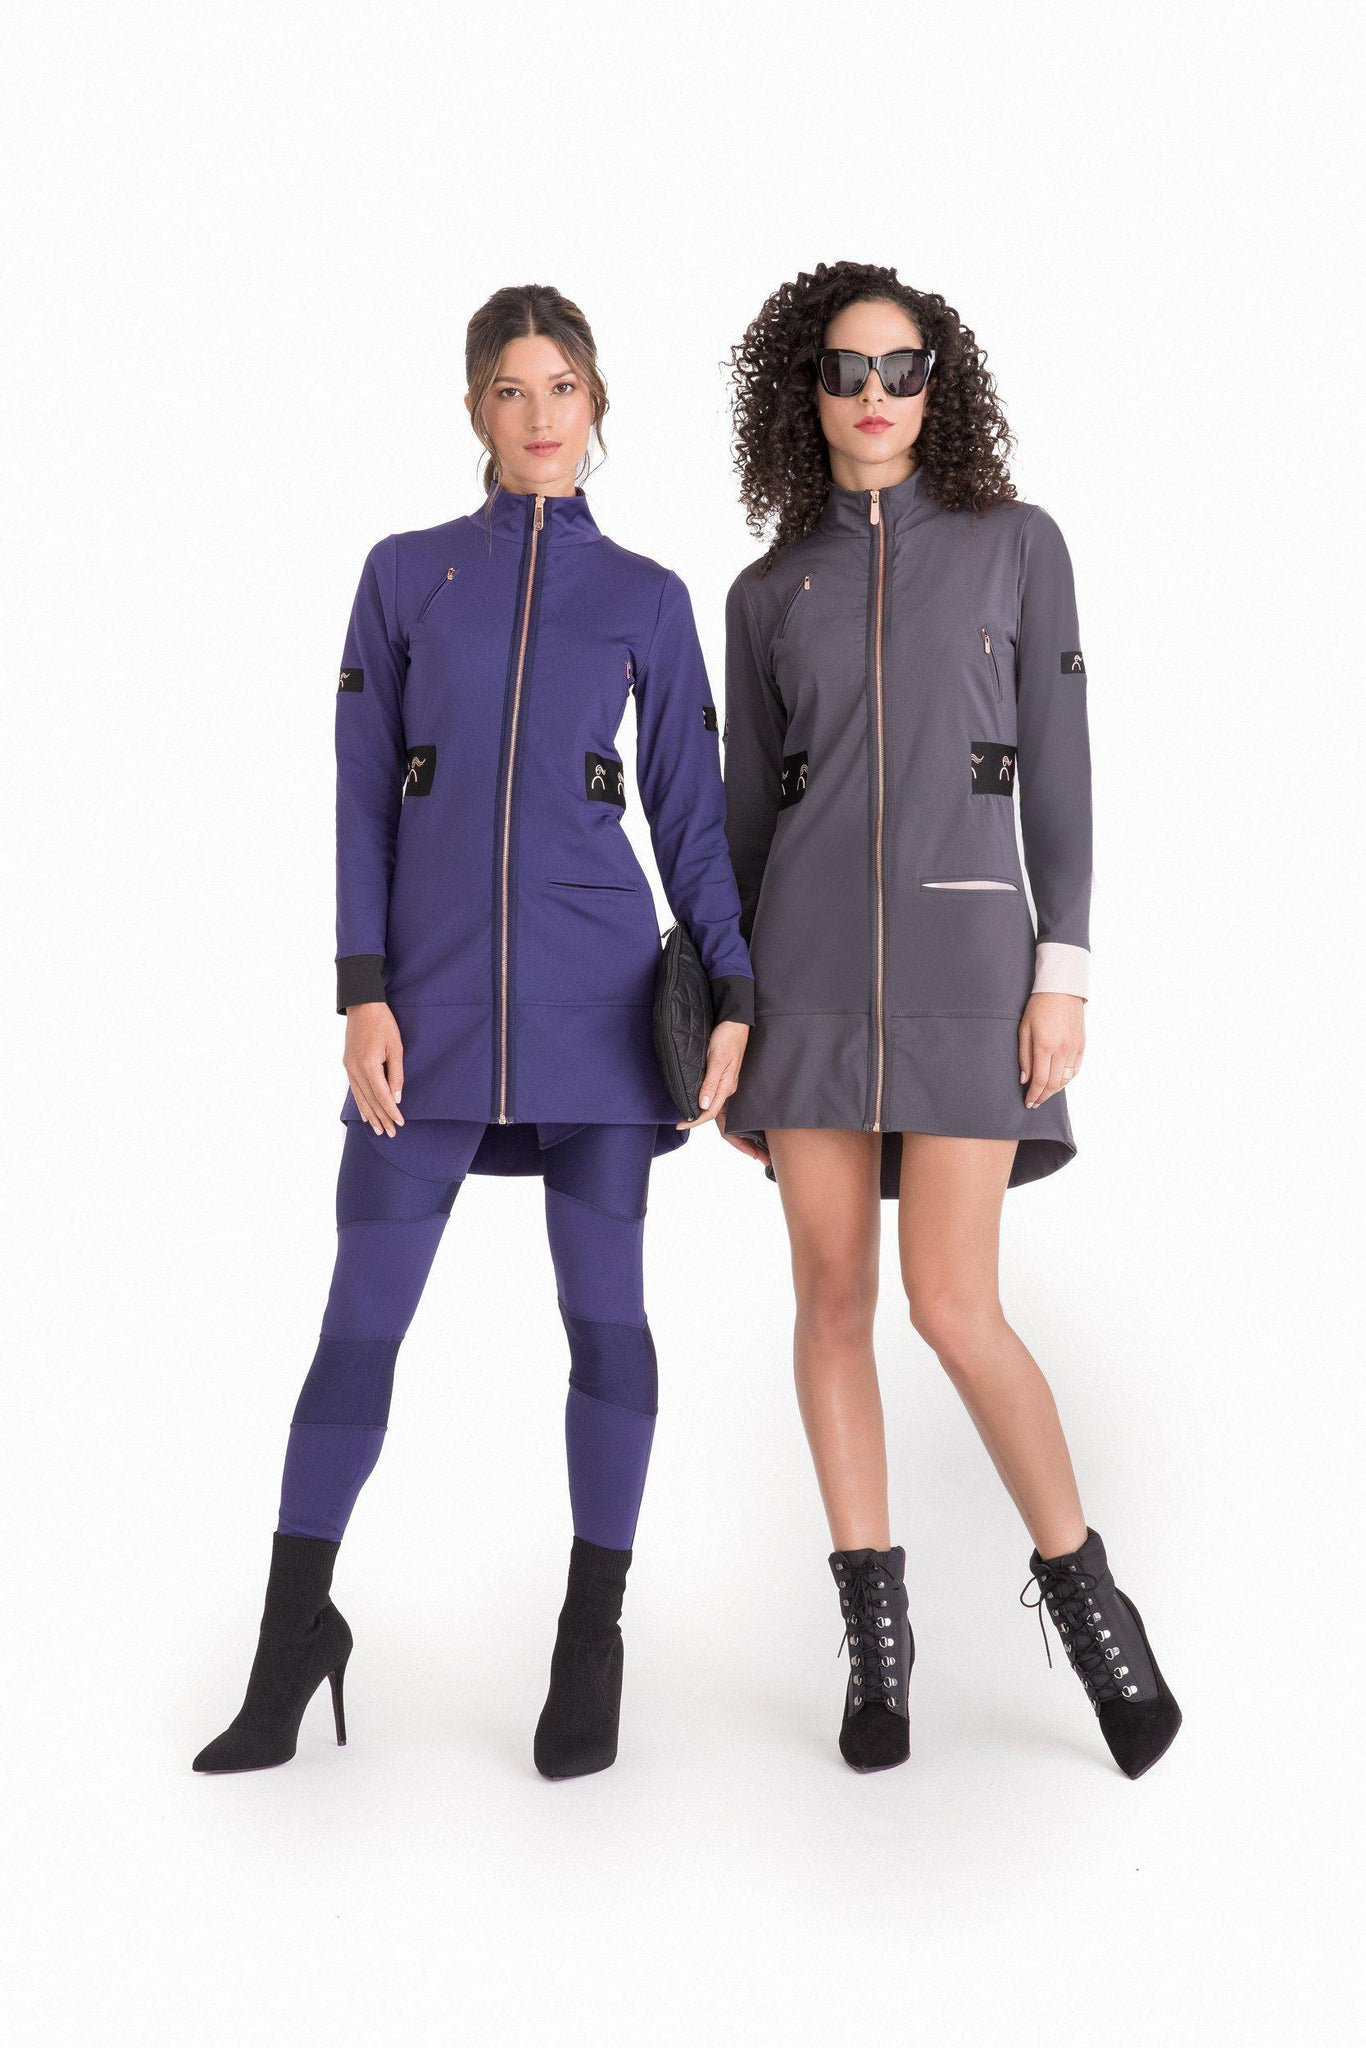 2 women with grey & purple Carry the Day Jacket